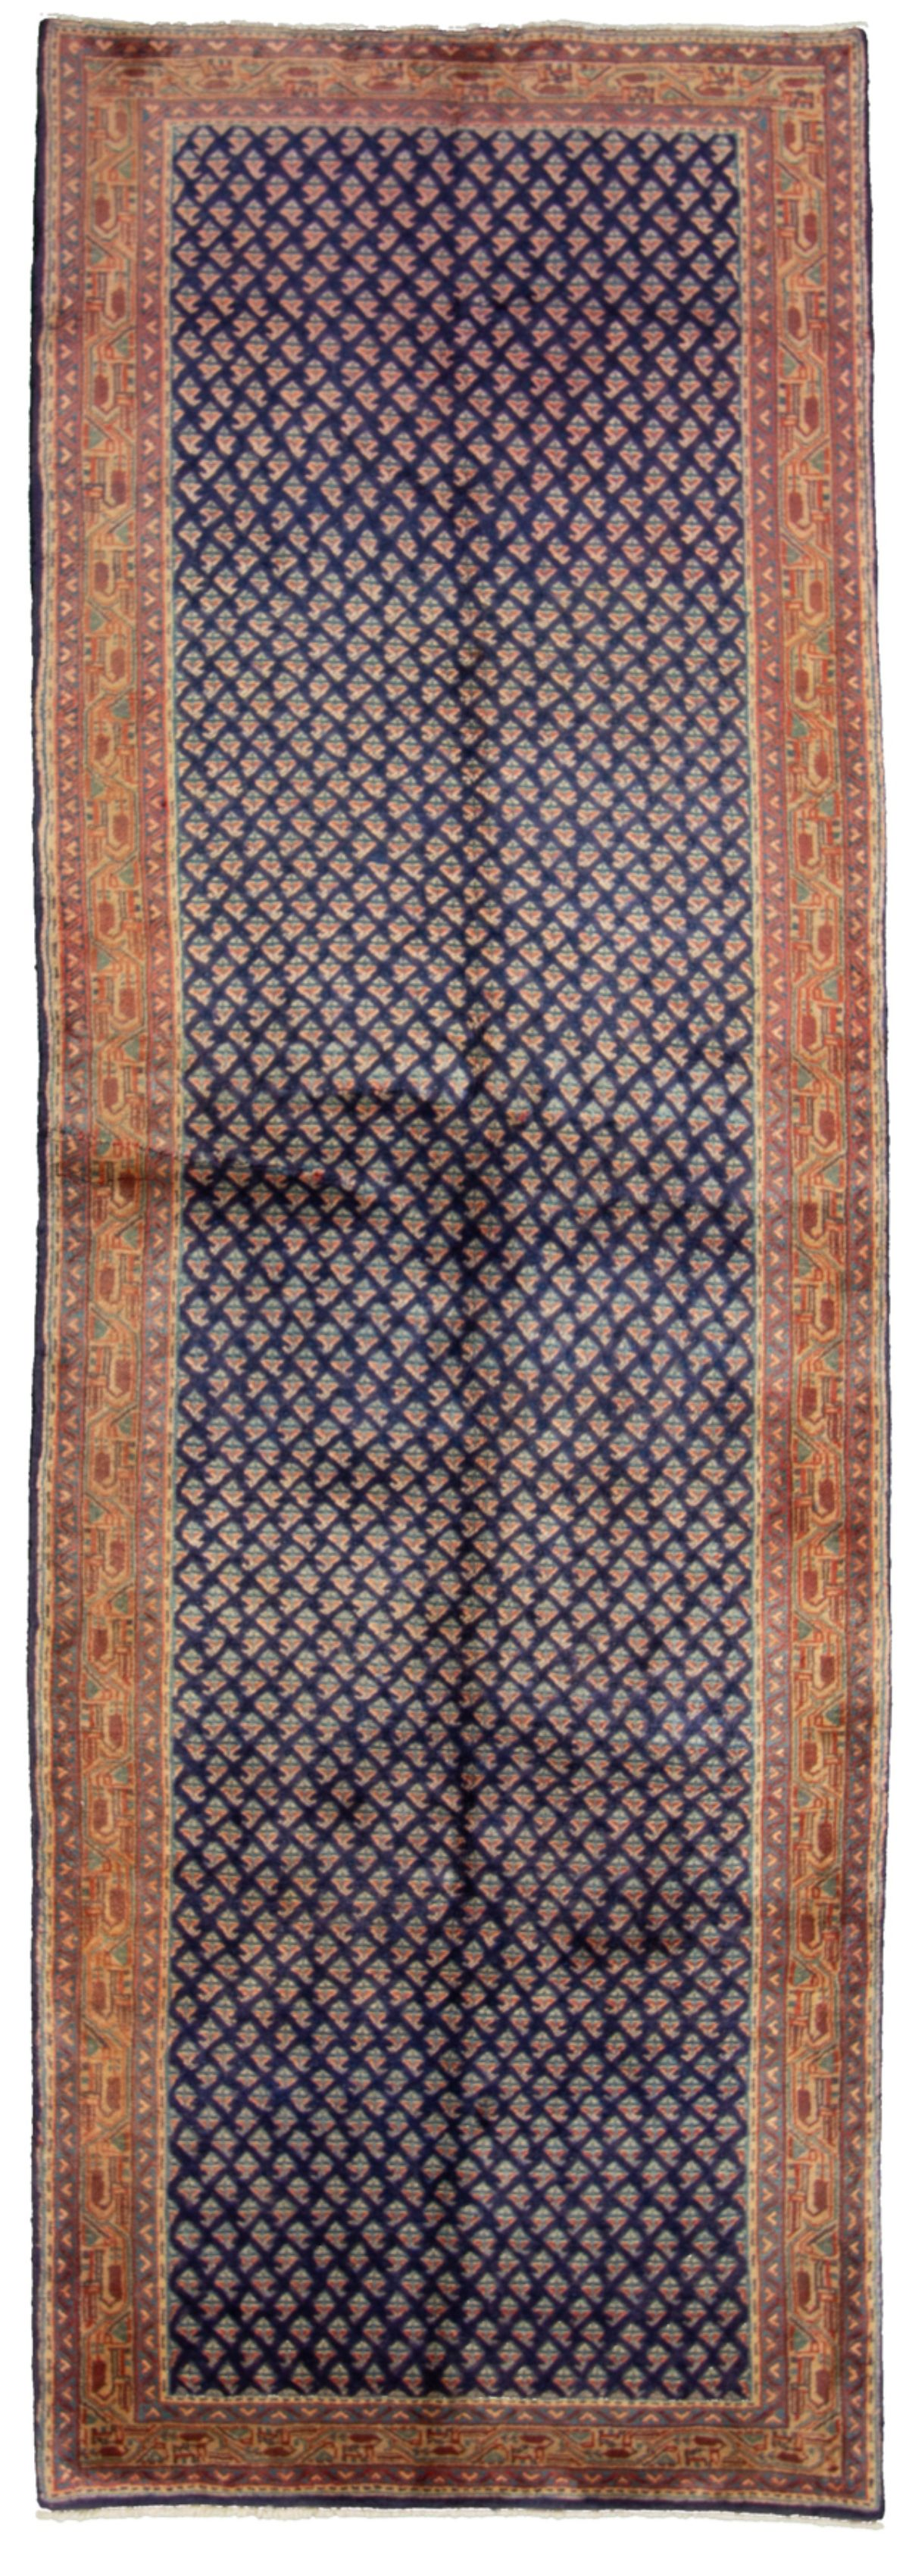 """Hand-knotted Arak Wool Rug 3'11"""" x 9'8"""" Size: 3'11"""" x 9'8"""""""